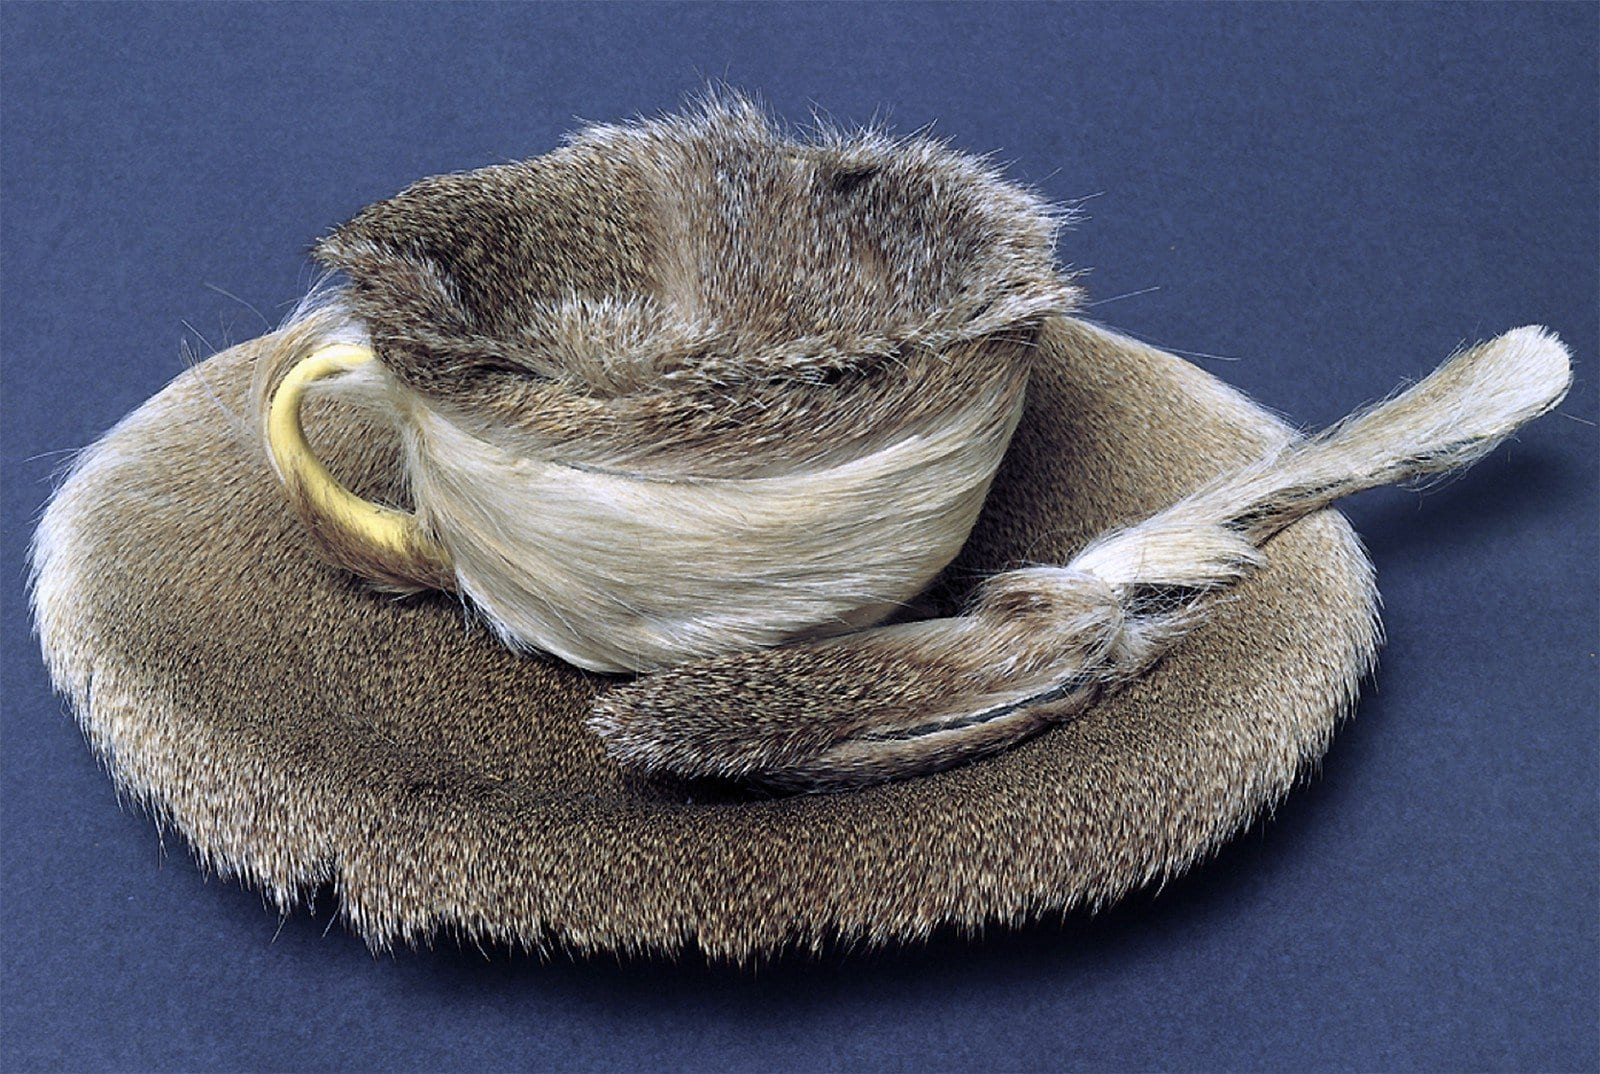 Oppenheim's fur-covered teacup